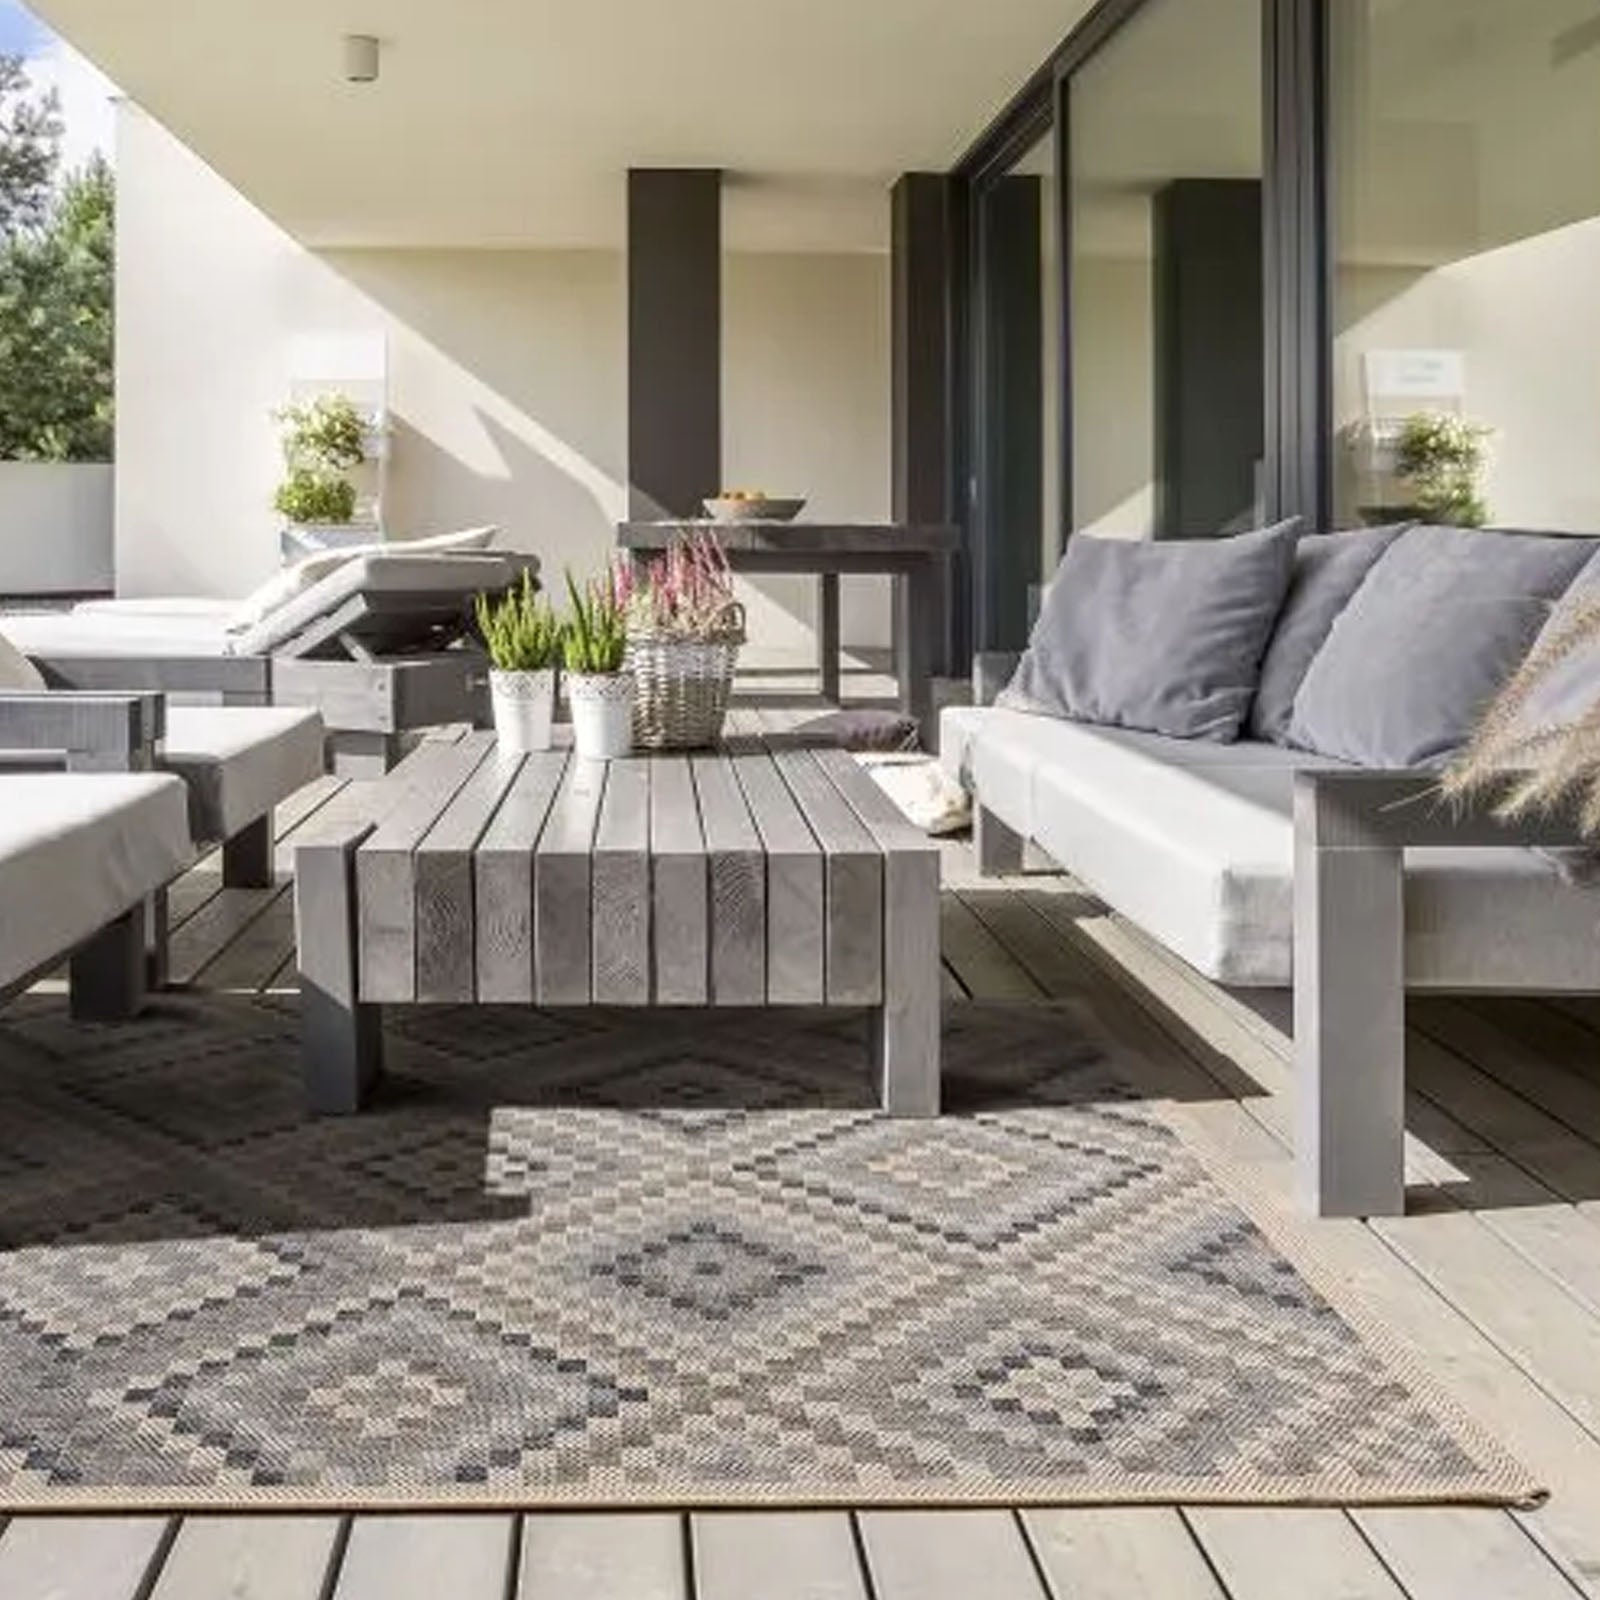 200X300 cm OUTDOOR/INDOOR RUG Simco-SIM-21-Beige-XL - ebarza